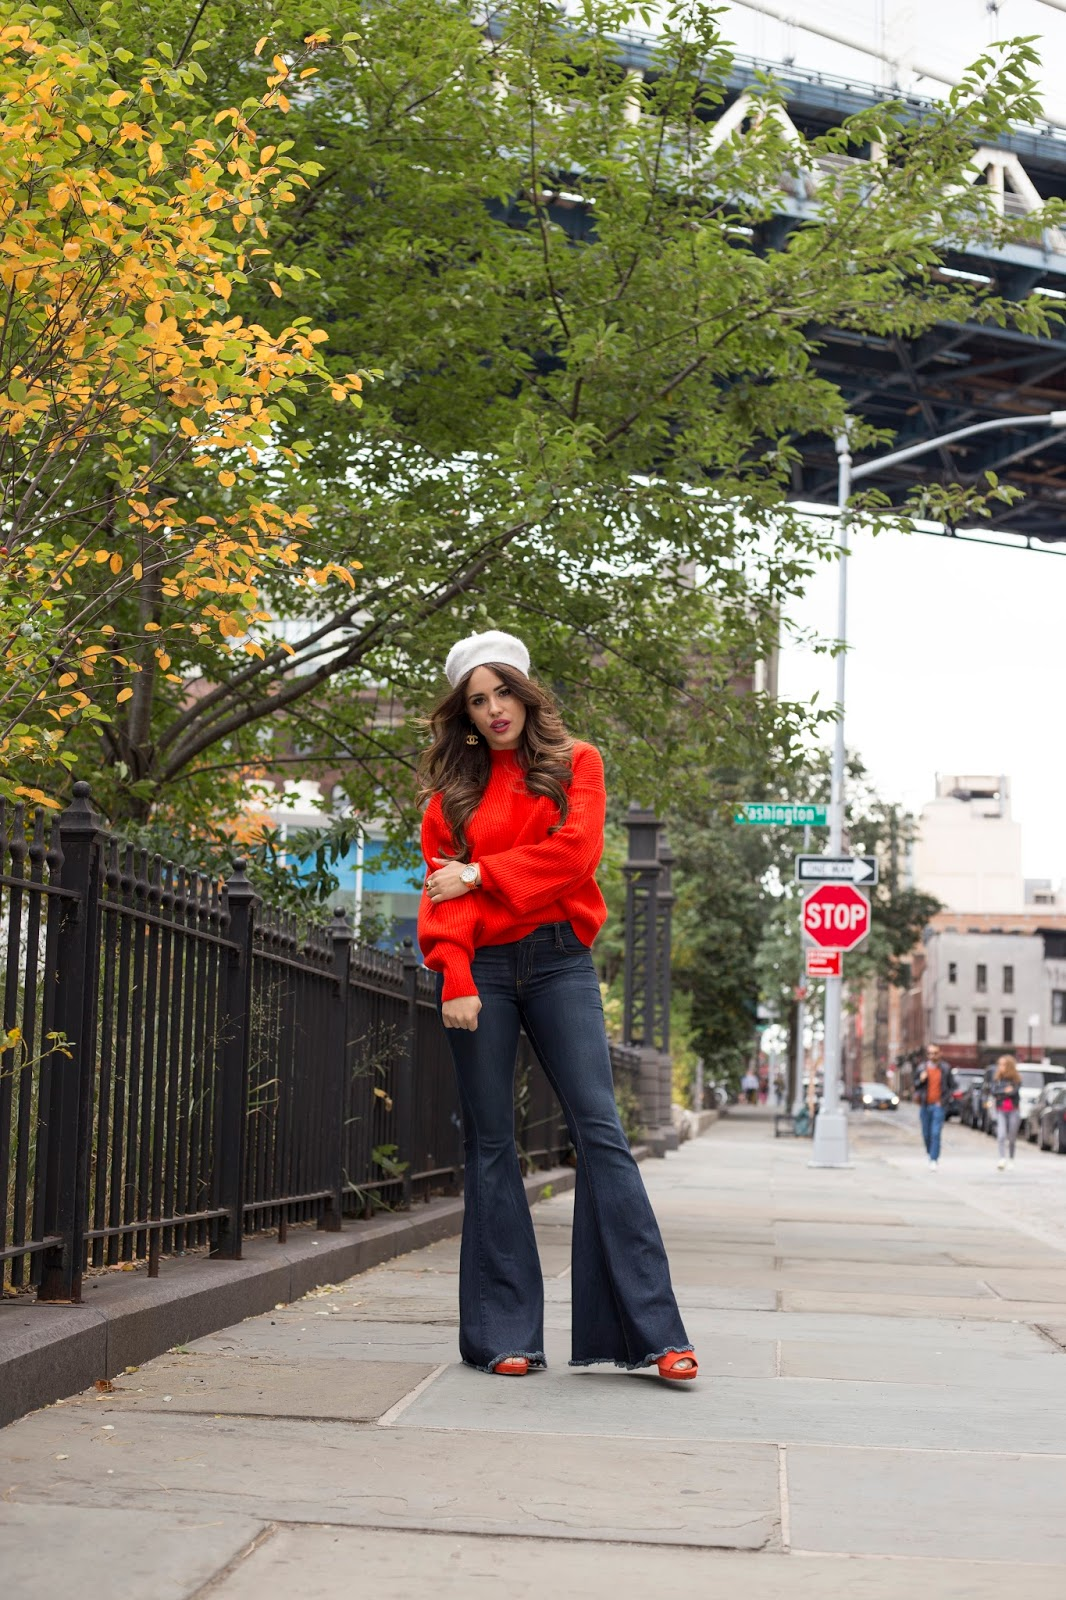 fall fashion, how to dress for nyc in the fall, nyc fall fashion, nyc blogger, nyc top blogger, elle harper, elle harper blog, elle harper fall, blogger fall fashion, orange sweater, red sweater, h&m fall fashion, how to dress cute for fall, how to dress in nyc, nyc fashion, how to wear a beret, what to wear a beret with, how to wear flare jeans, how to wear bell bottoms, cute ways to style a sweater, cute ways to wear a beret, brooklyn fashion, new york city style, bell bottoms, cute fall looks, how to dress cute in the fall, how to style sweaters, upcoming bloggers, southern blogger, arkansas blogger